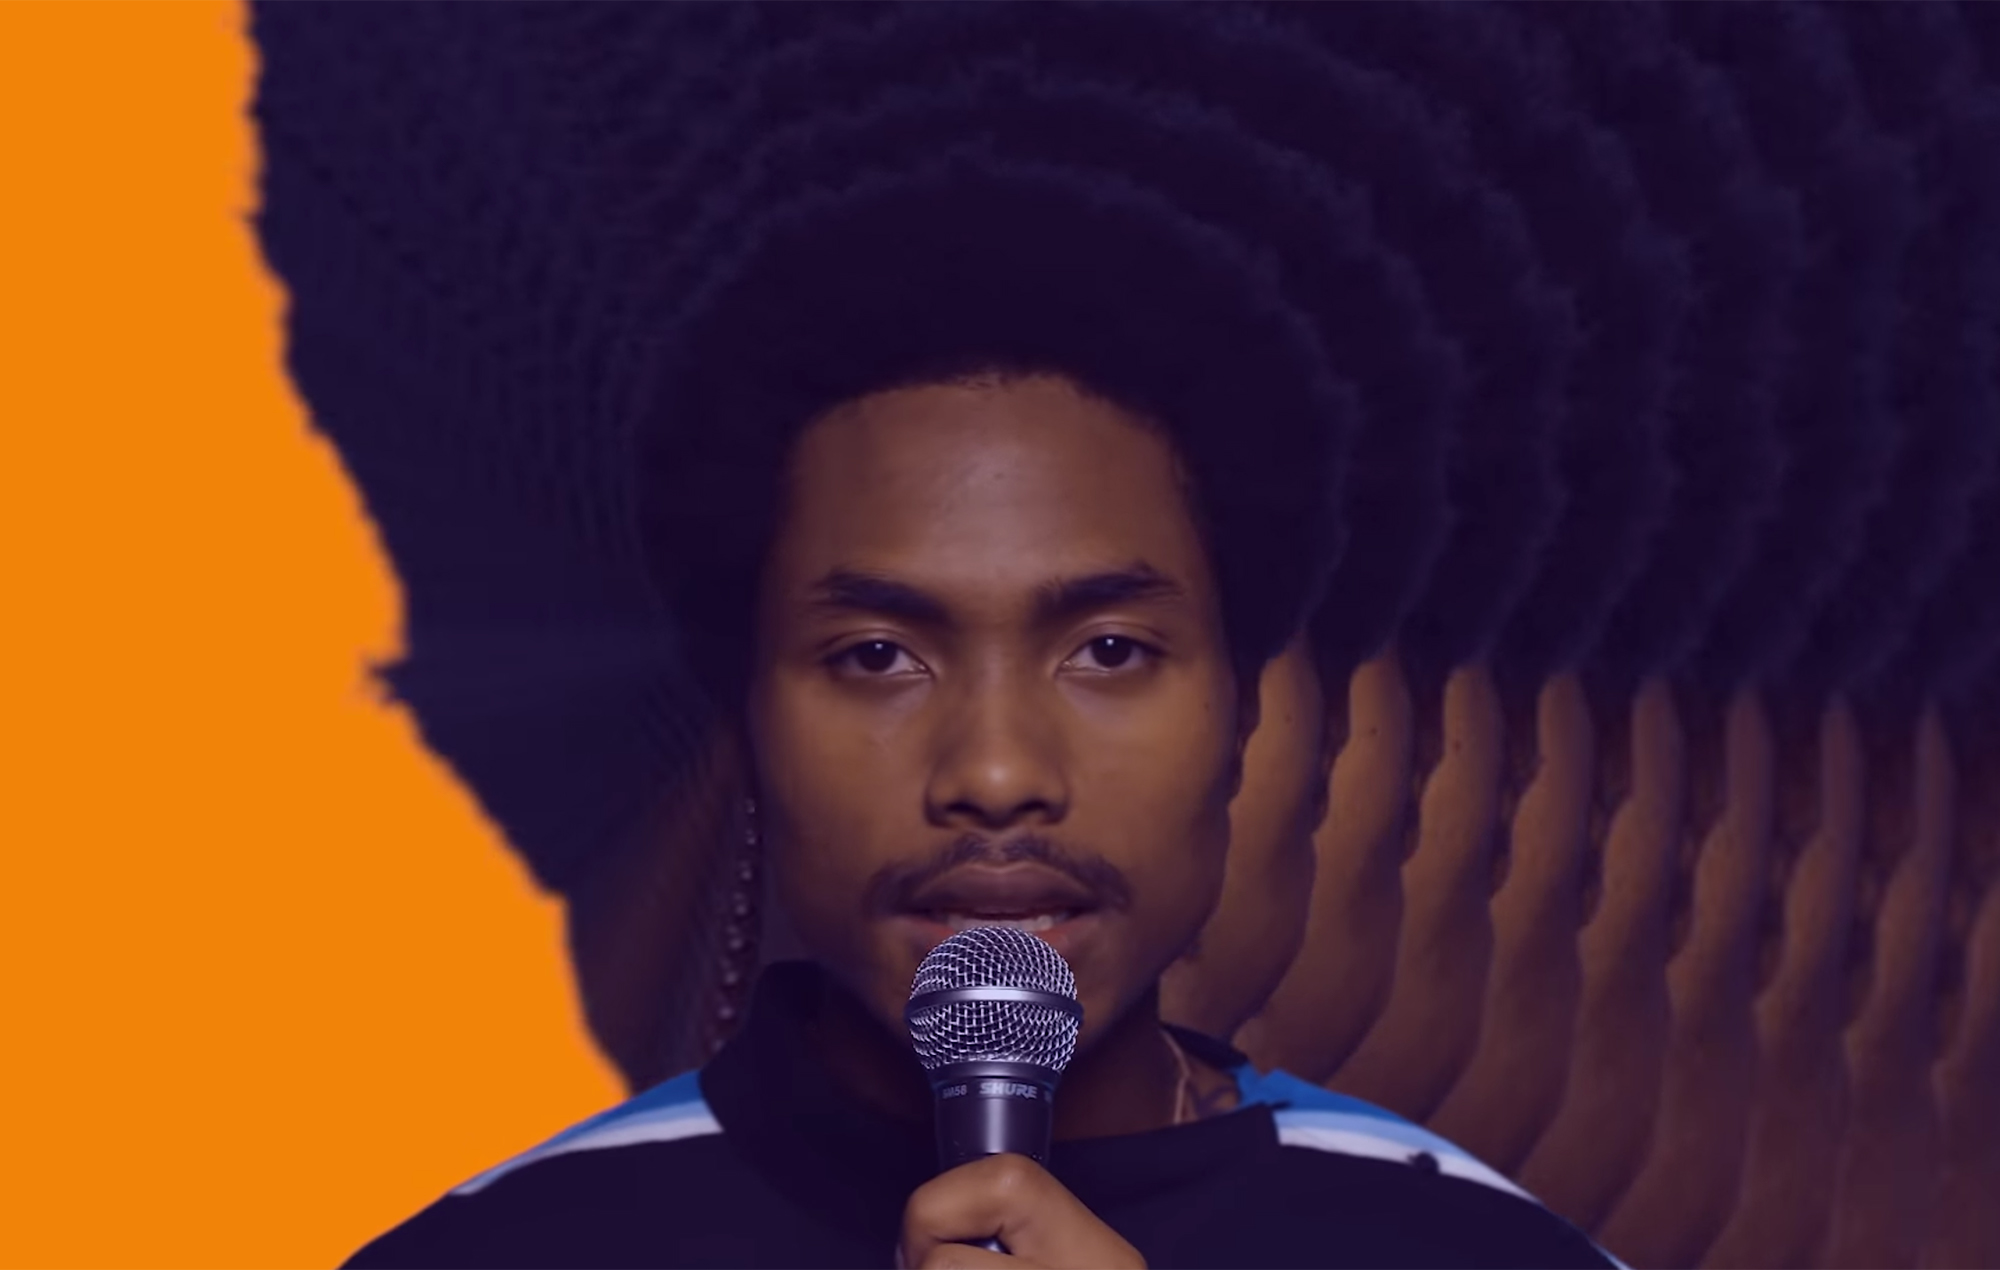 Steve Lacy shares groovy, colourful music video for Playground